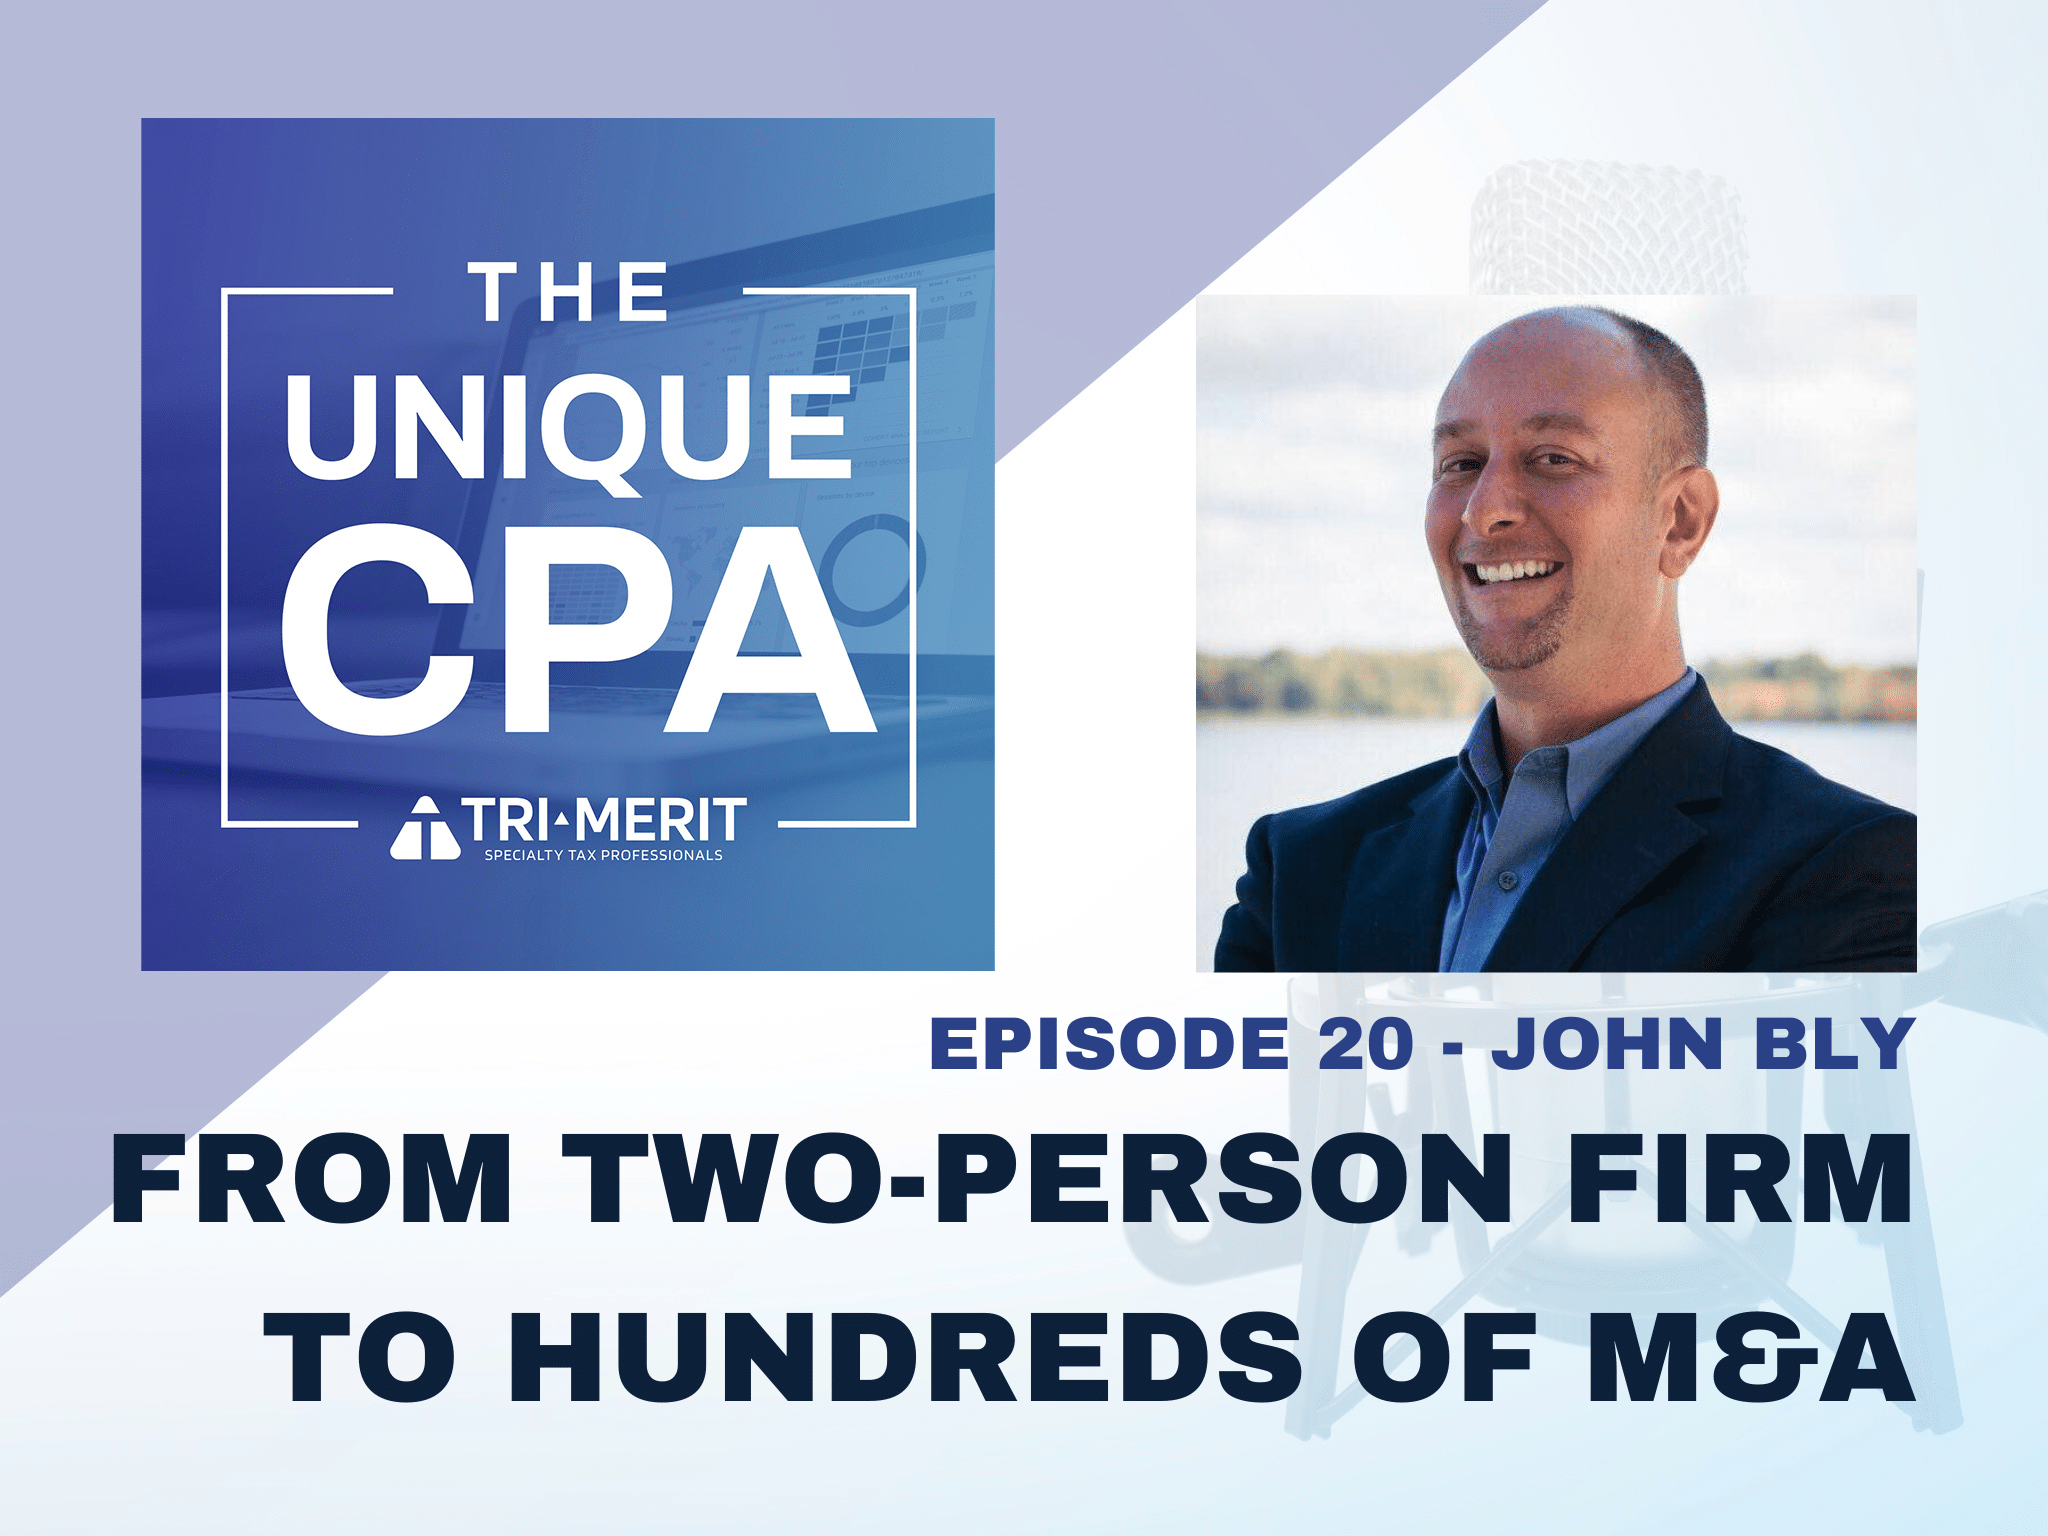 The Unique CPA Feature Image Ep 20 John Bly 1 - From Two-Person Firm to Hundreds of M&A - Tri-Merit